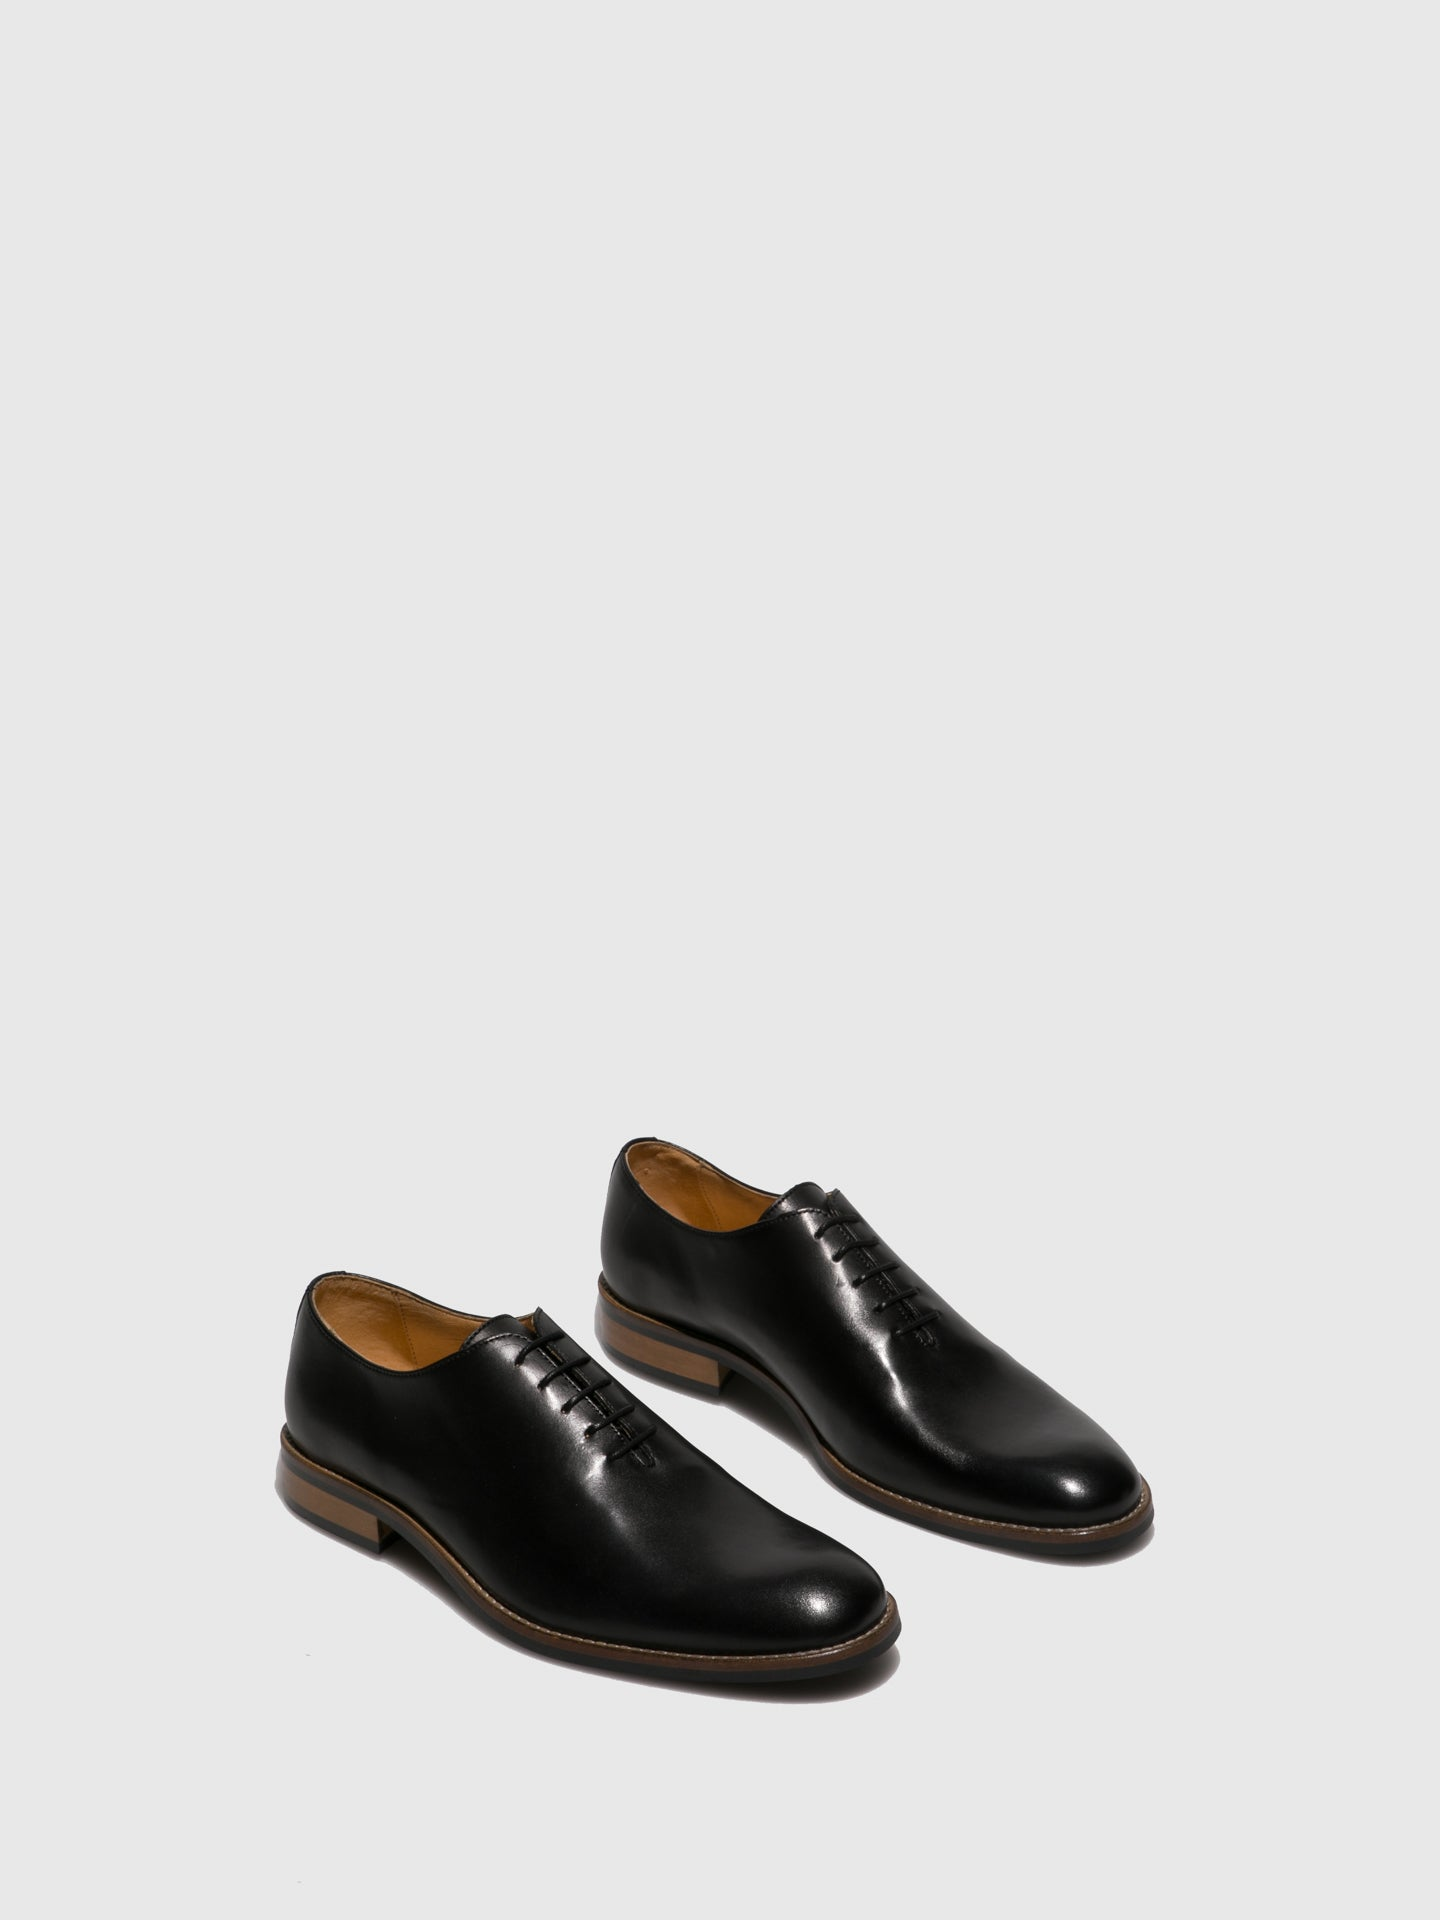 Foreva Black Classic Shoes